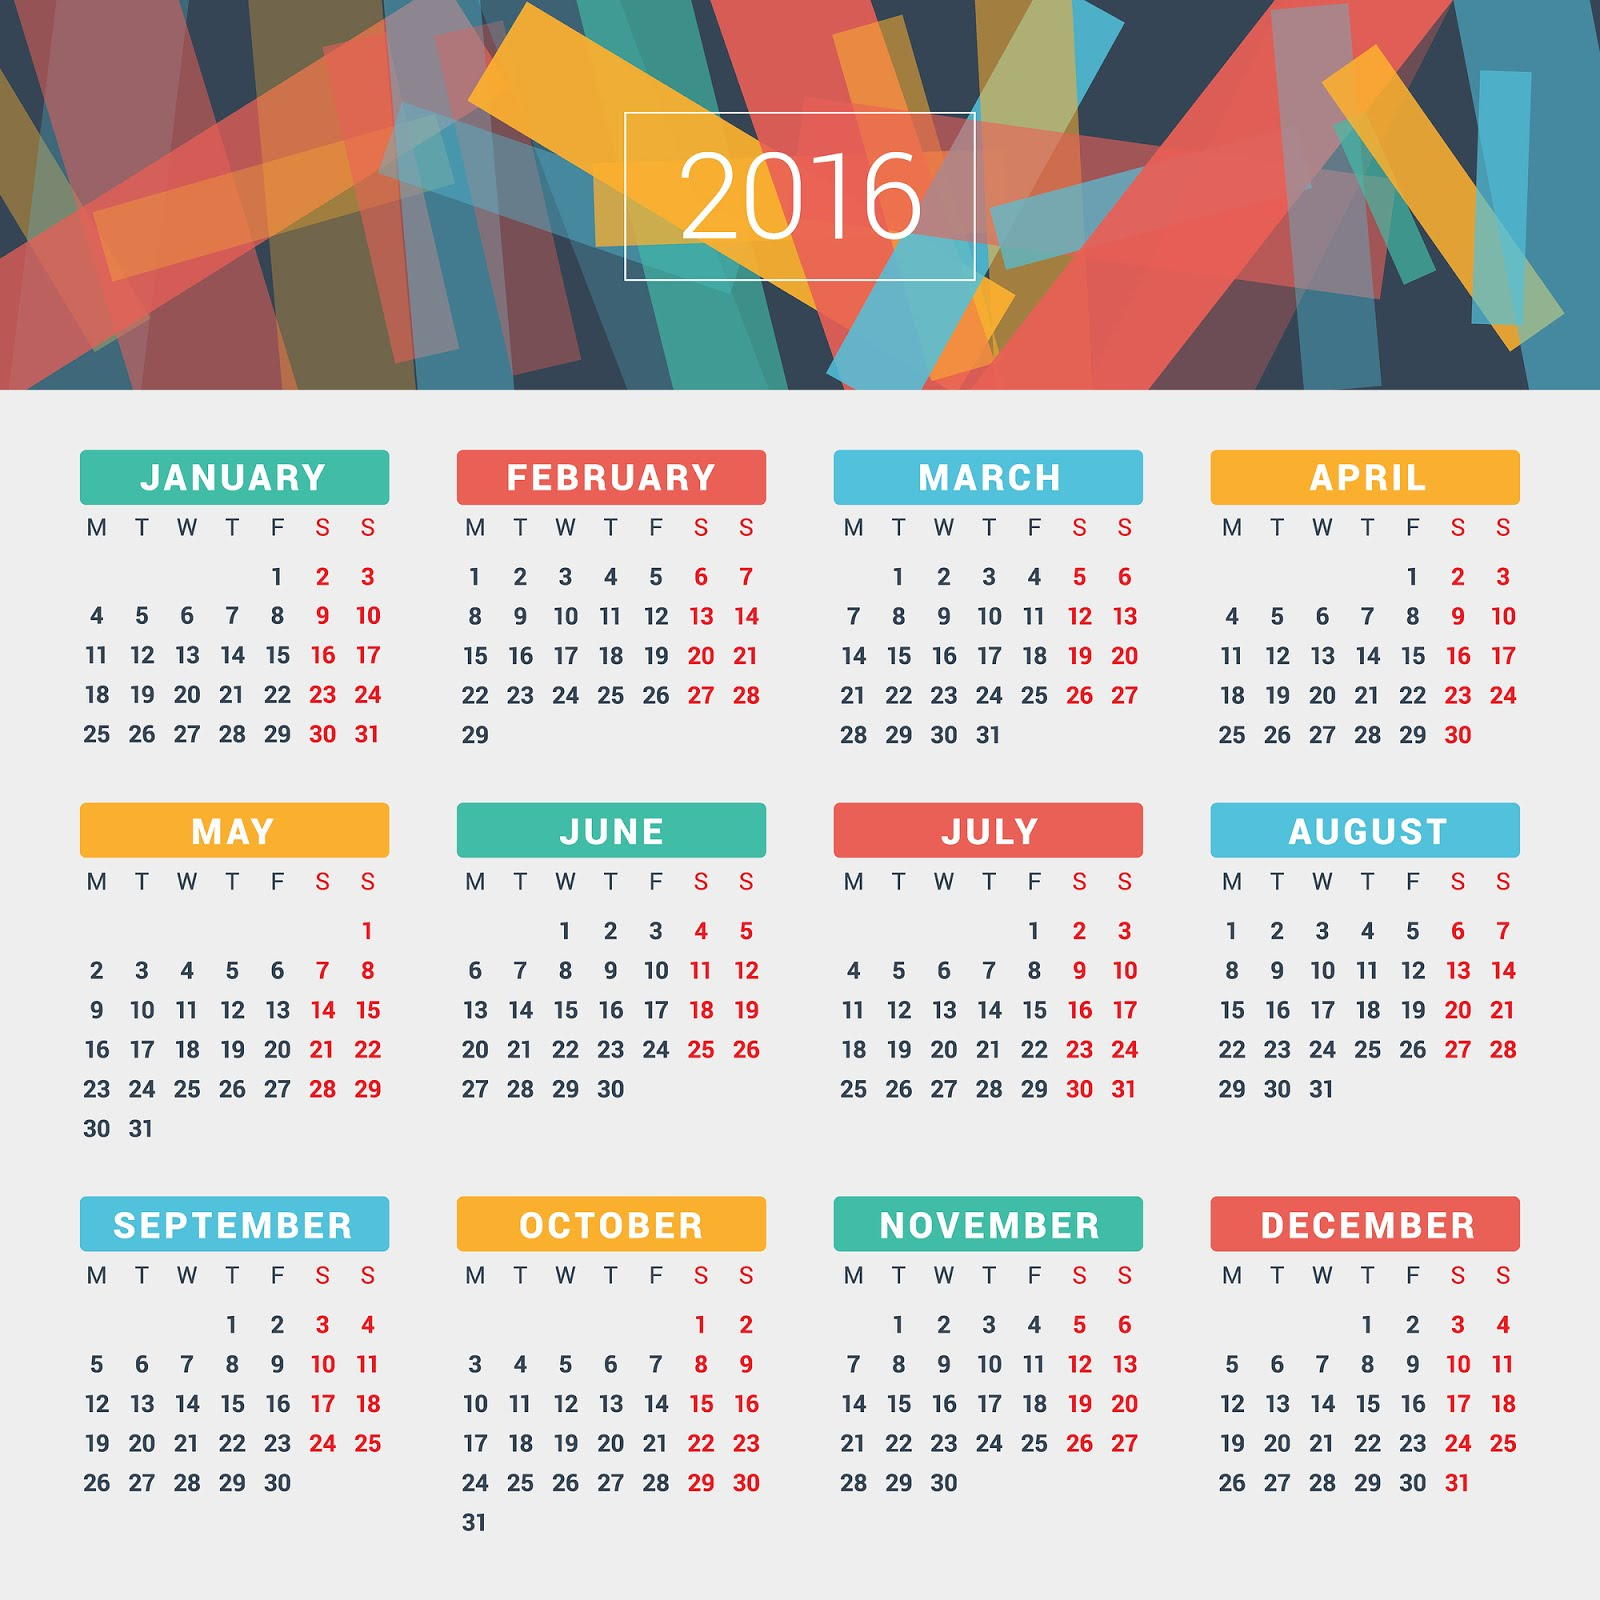 Printable Calendar 2016 for United States (PDF)